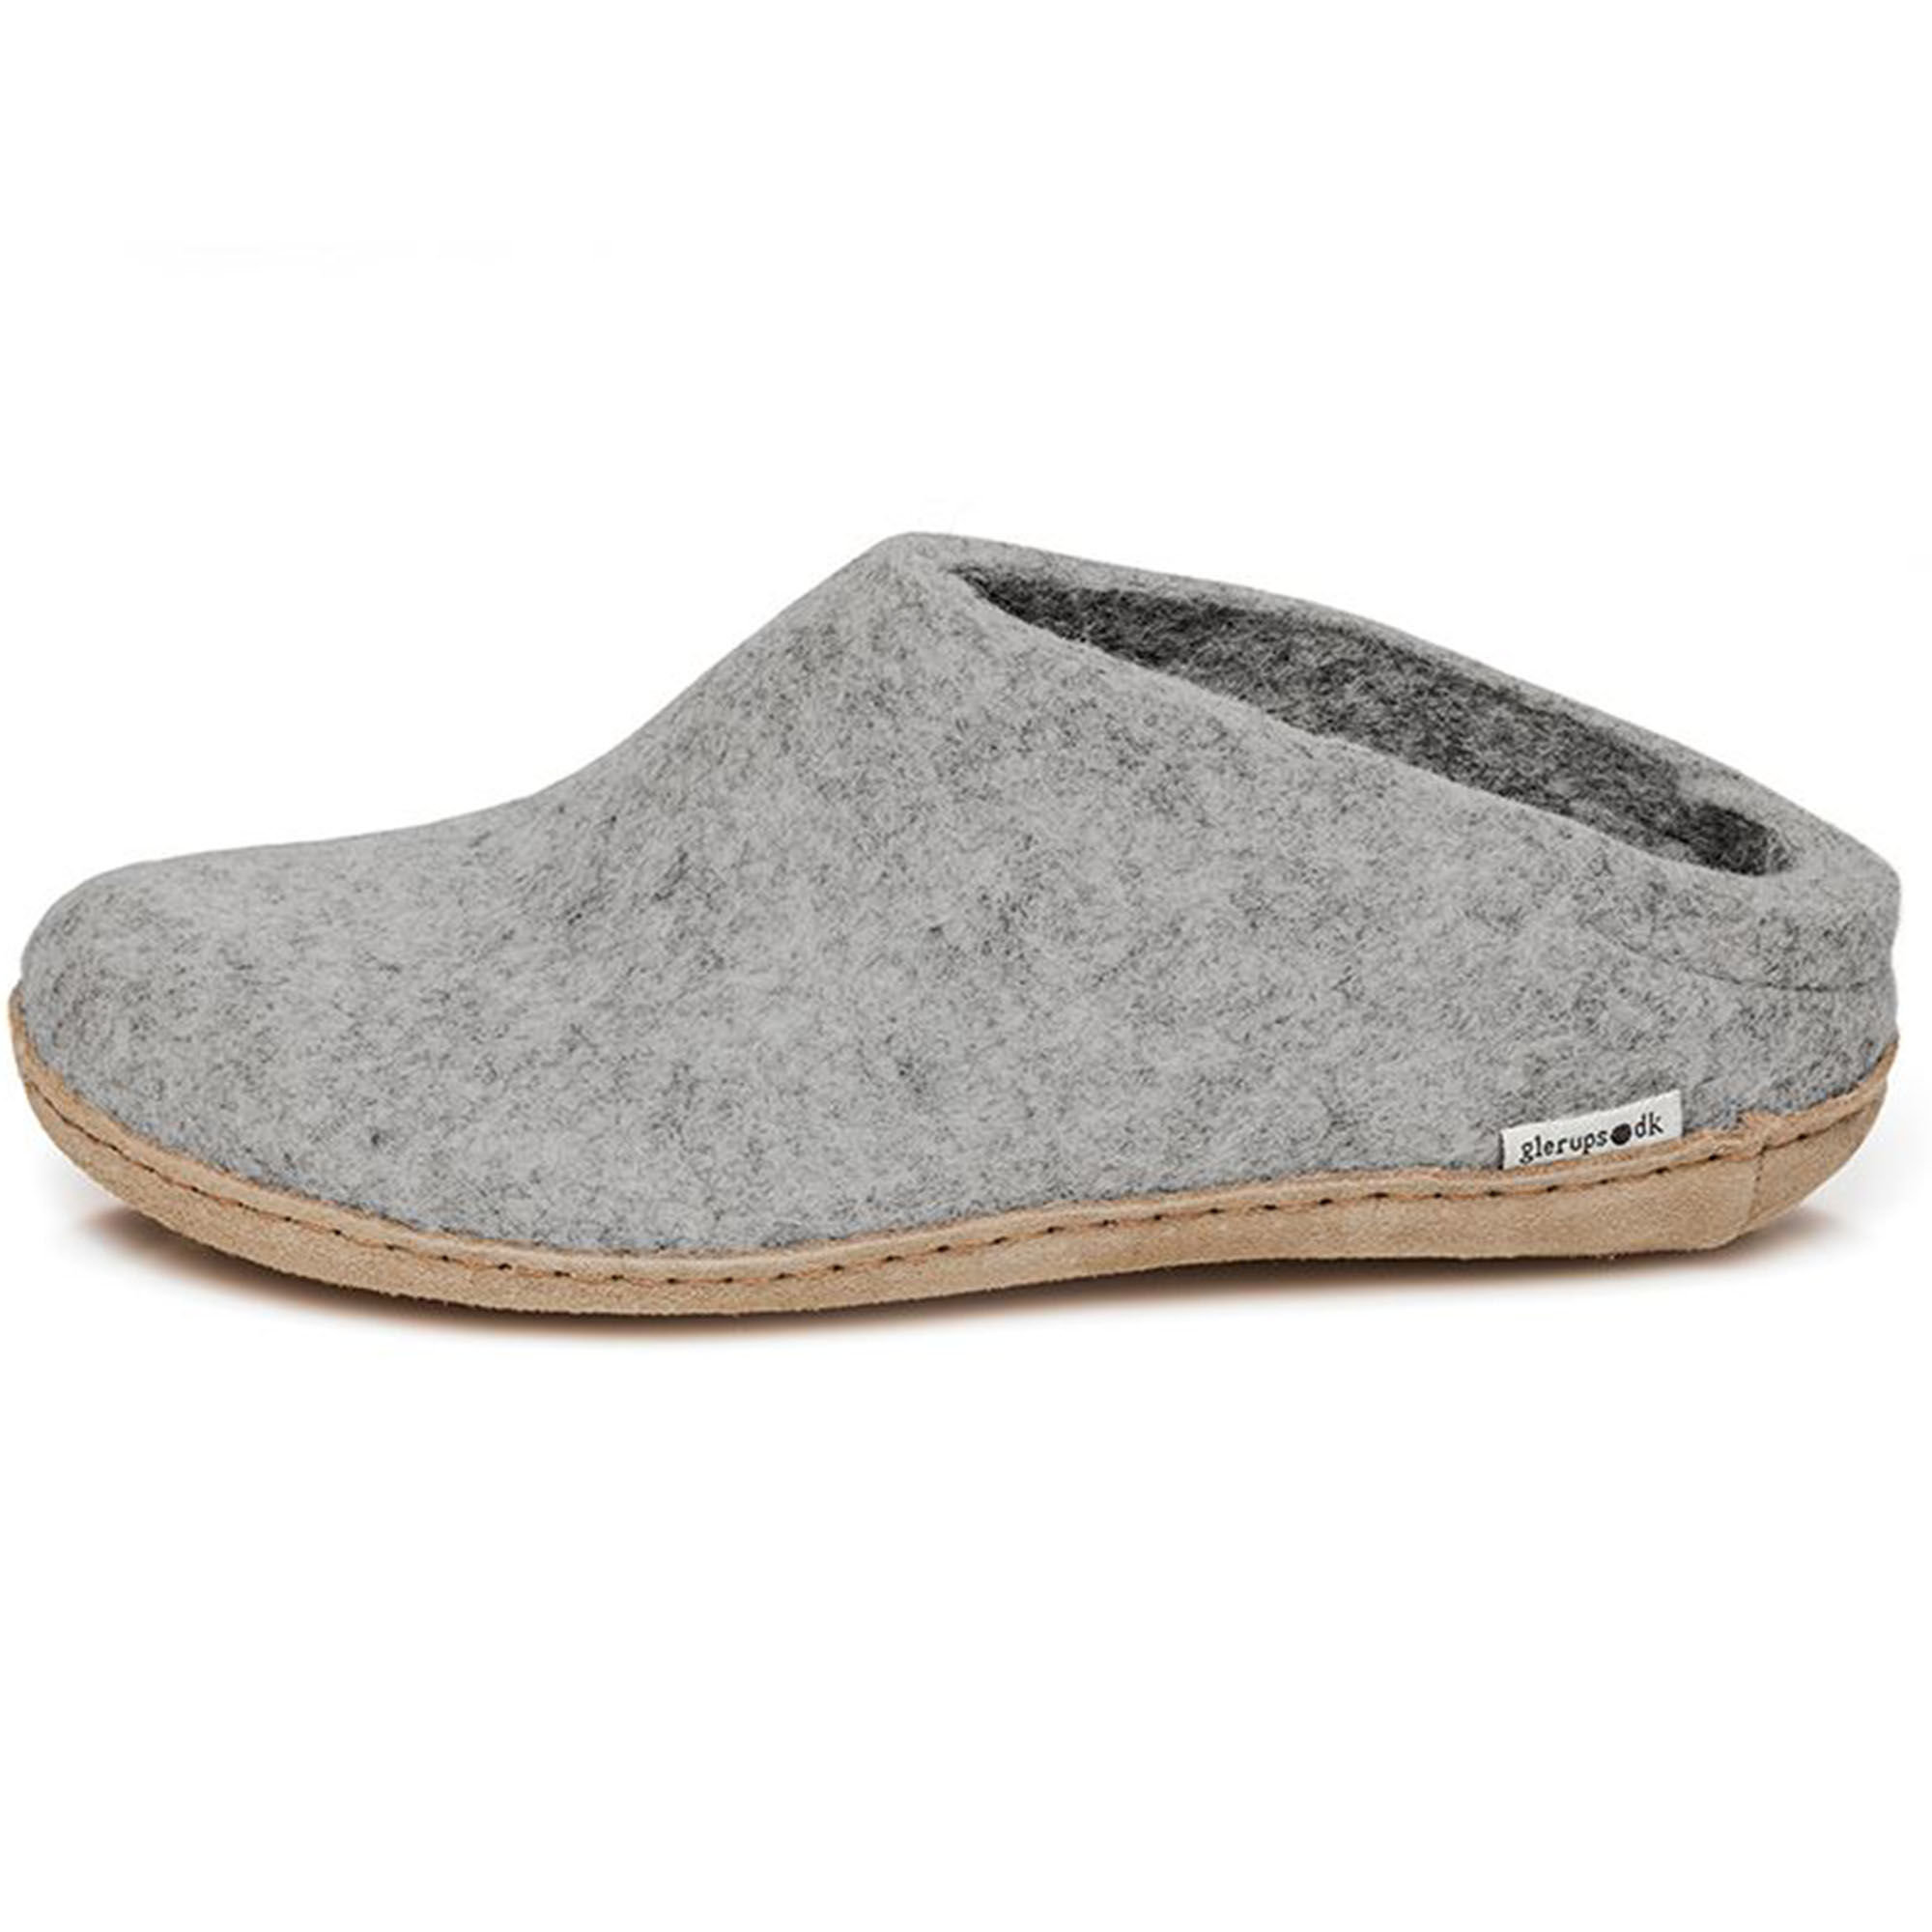 Post Unisex Trading Slip Glerups Felt On SlipperKittery QtrChdxs